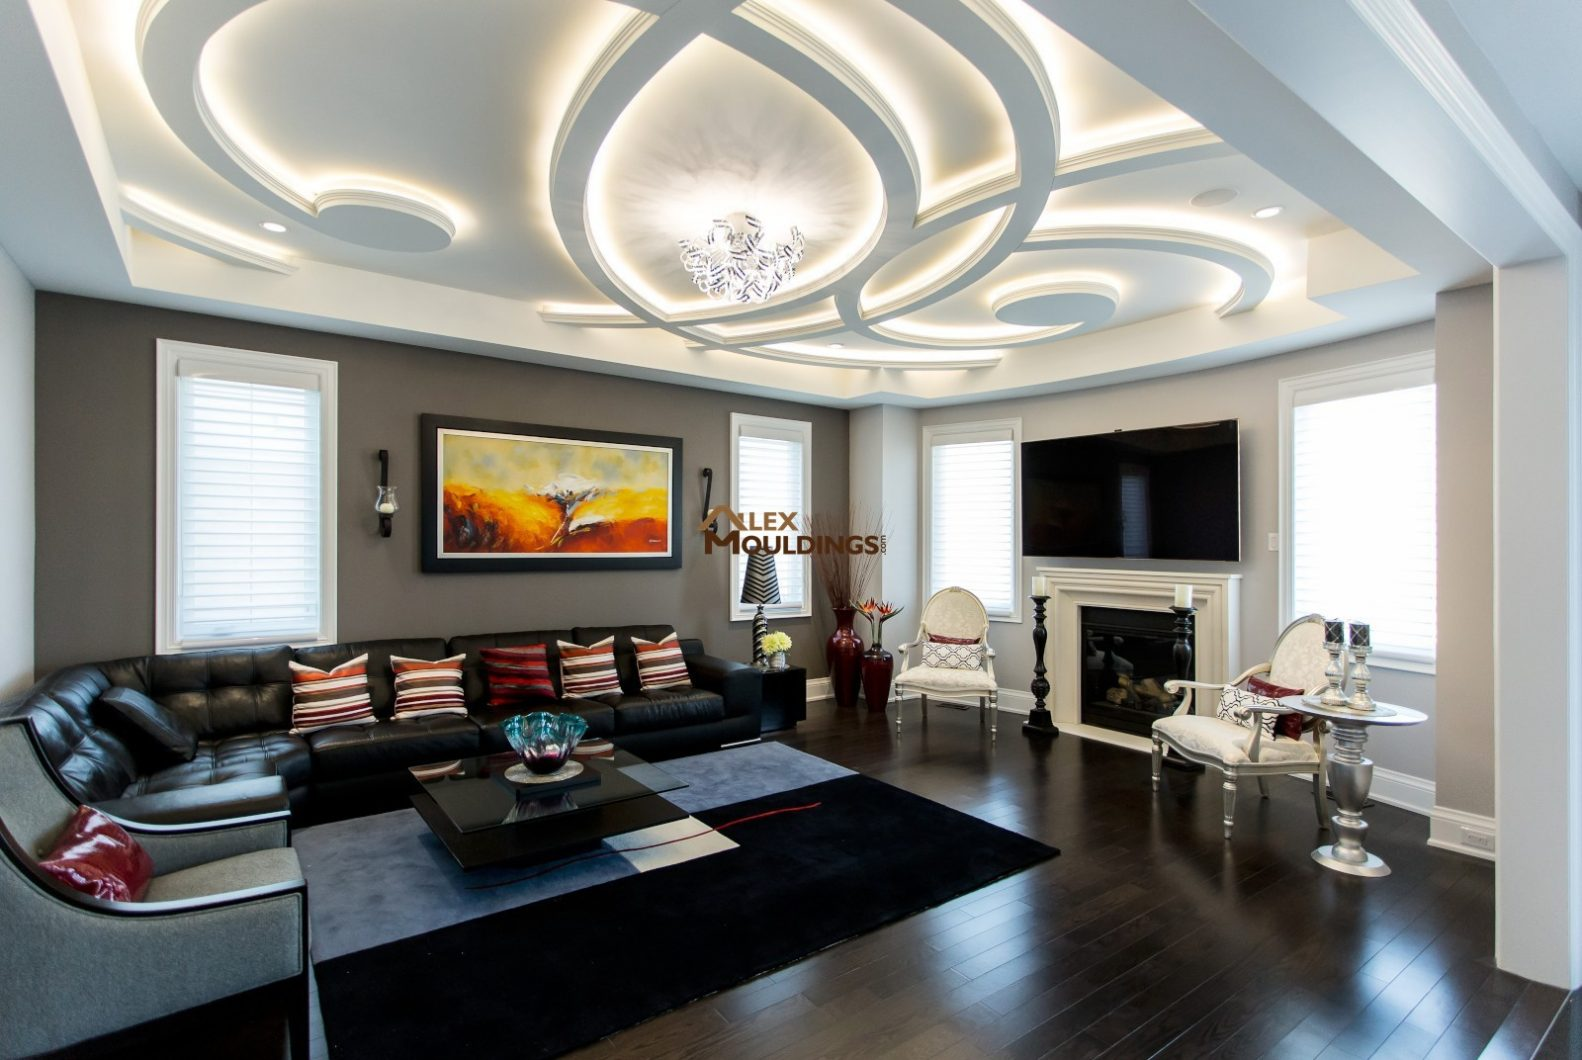 Design Coffered Ceiling Ideas 17 special coffered waffle ceilings making house look so much richer waiivy ceiling